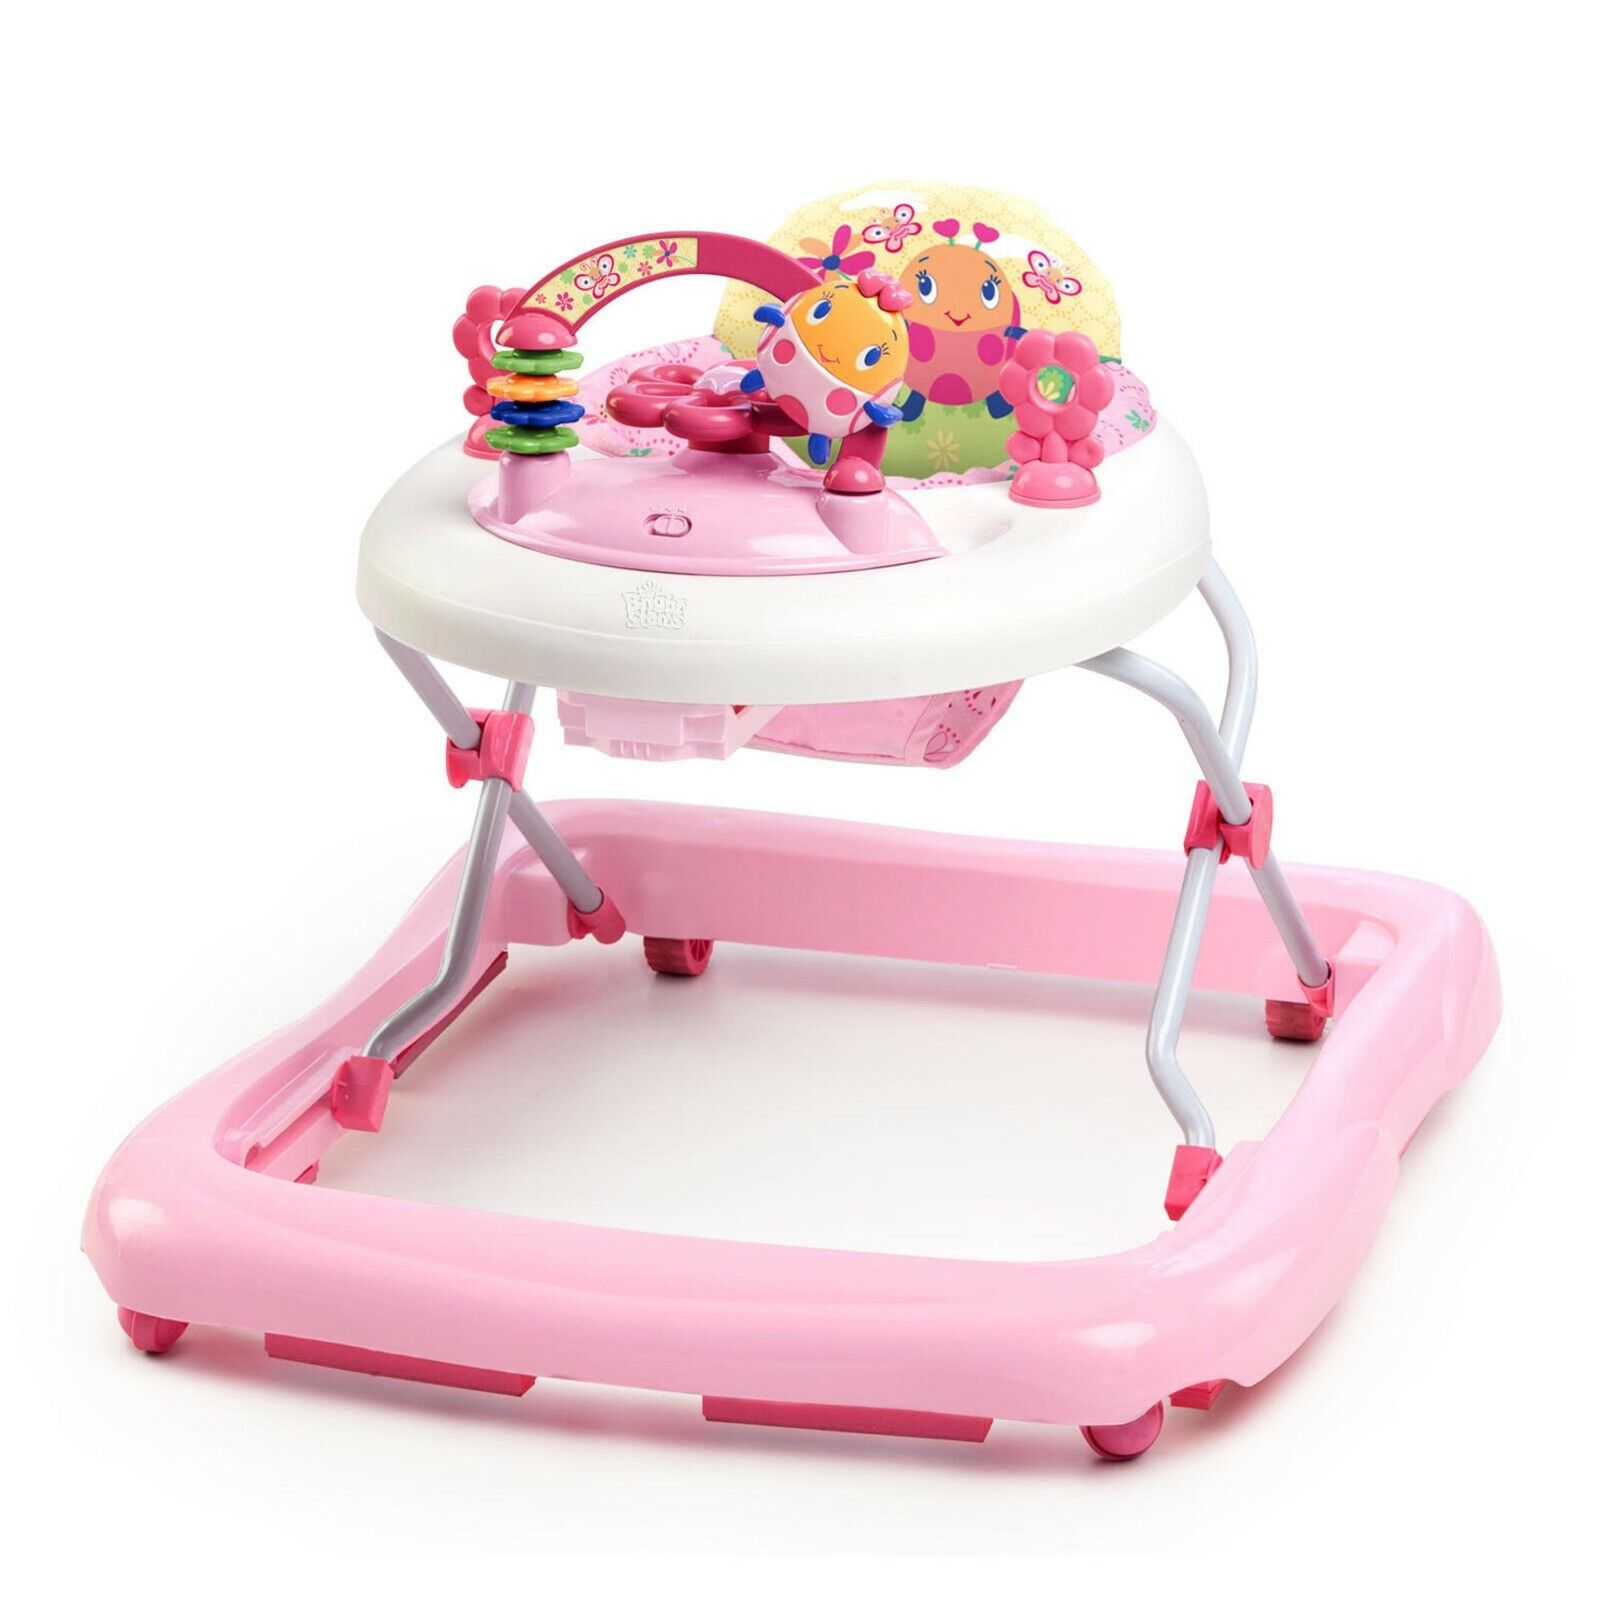 Infant Bright Starts Walk-A-Bout Walker Detachable Activity